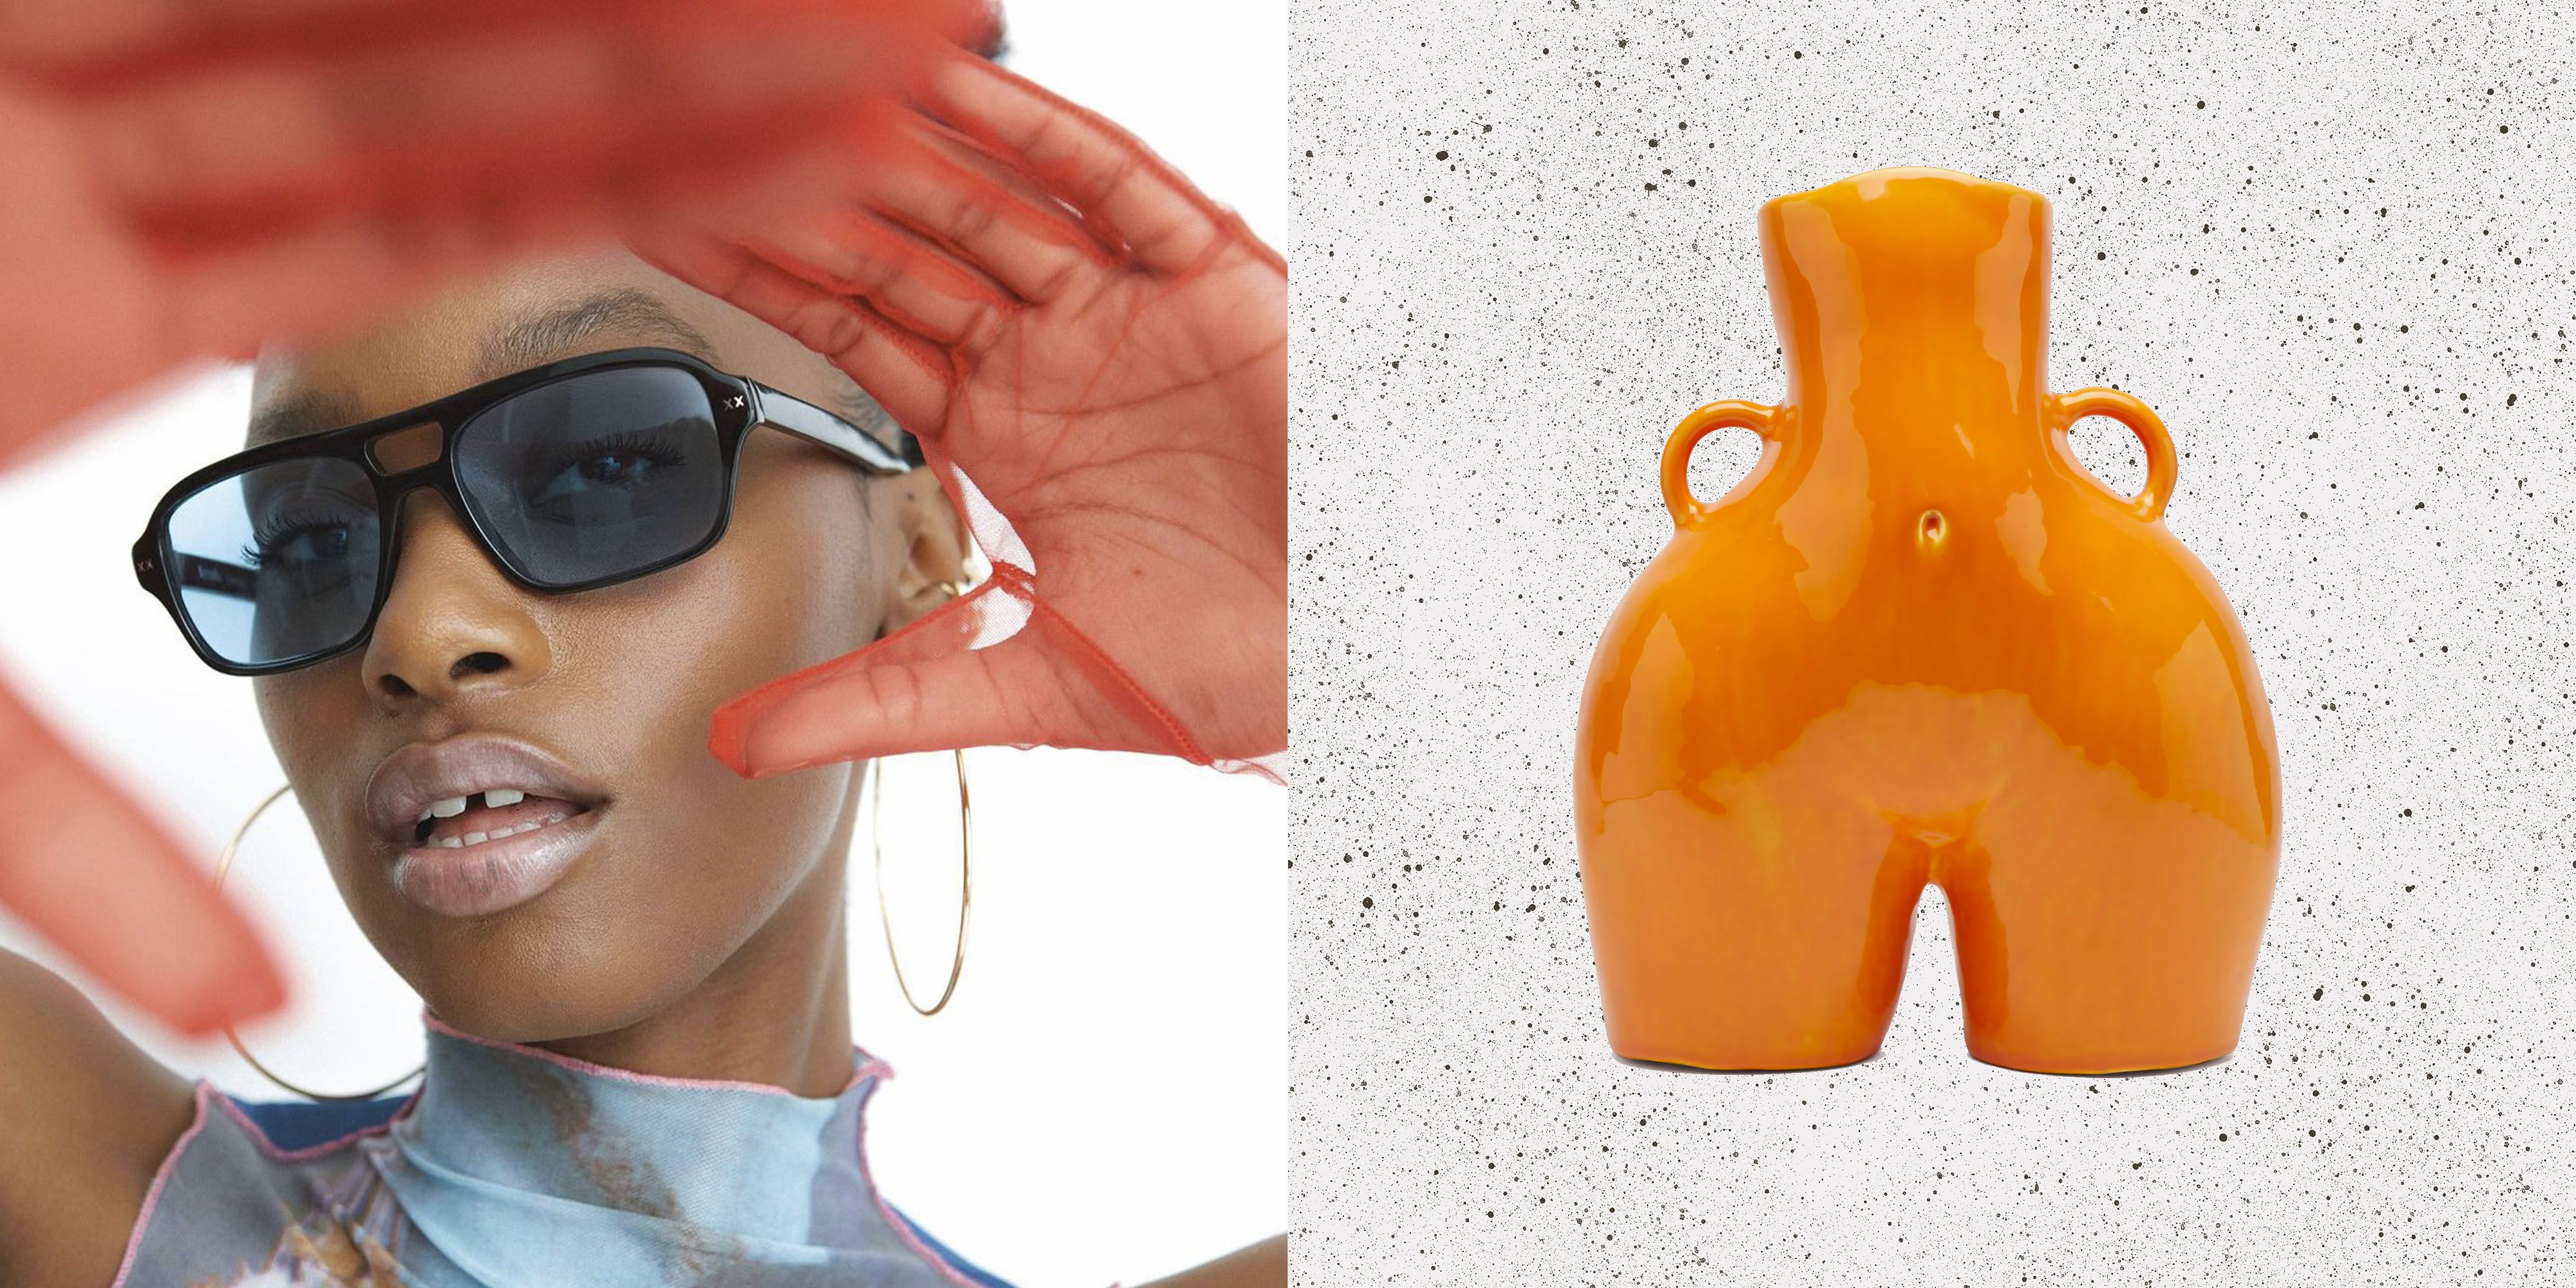 The 53 Best Gifts for Women Are the Gifts Women Actually Want